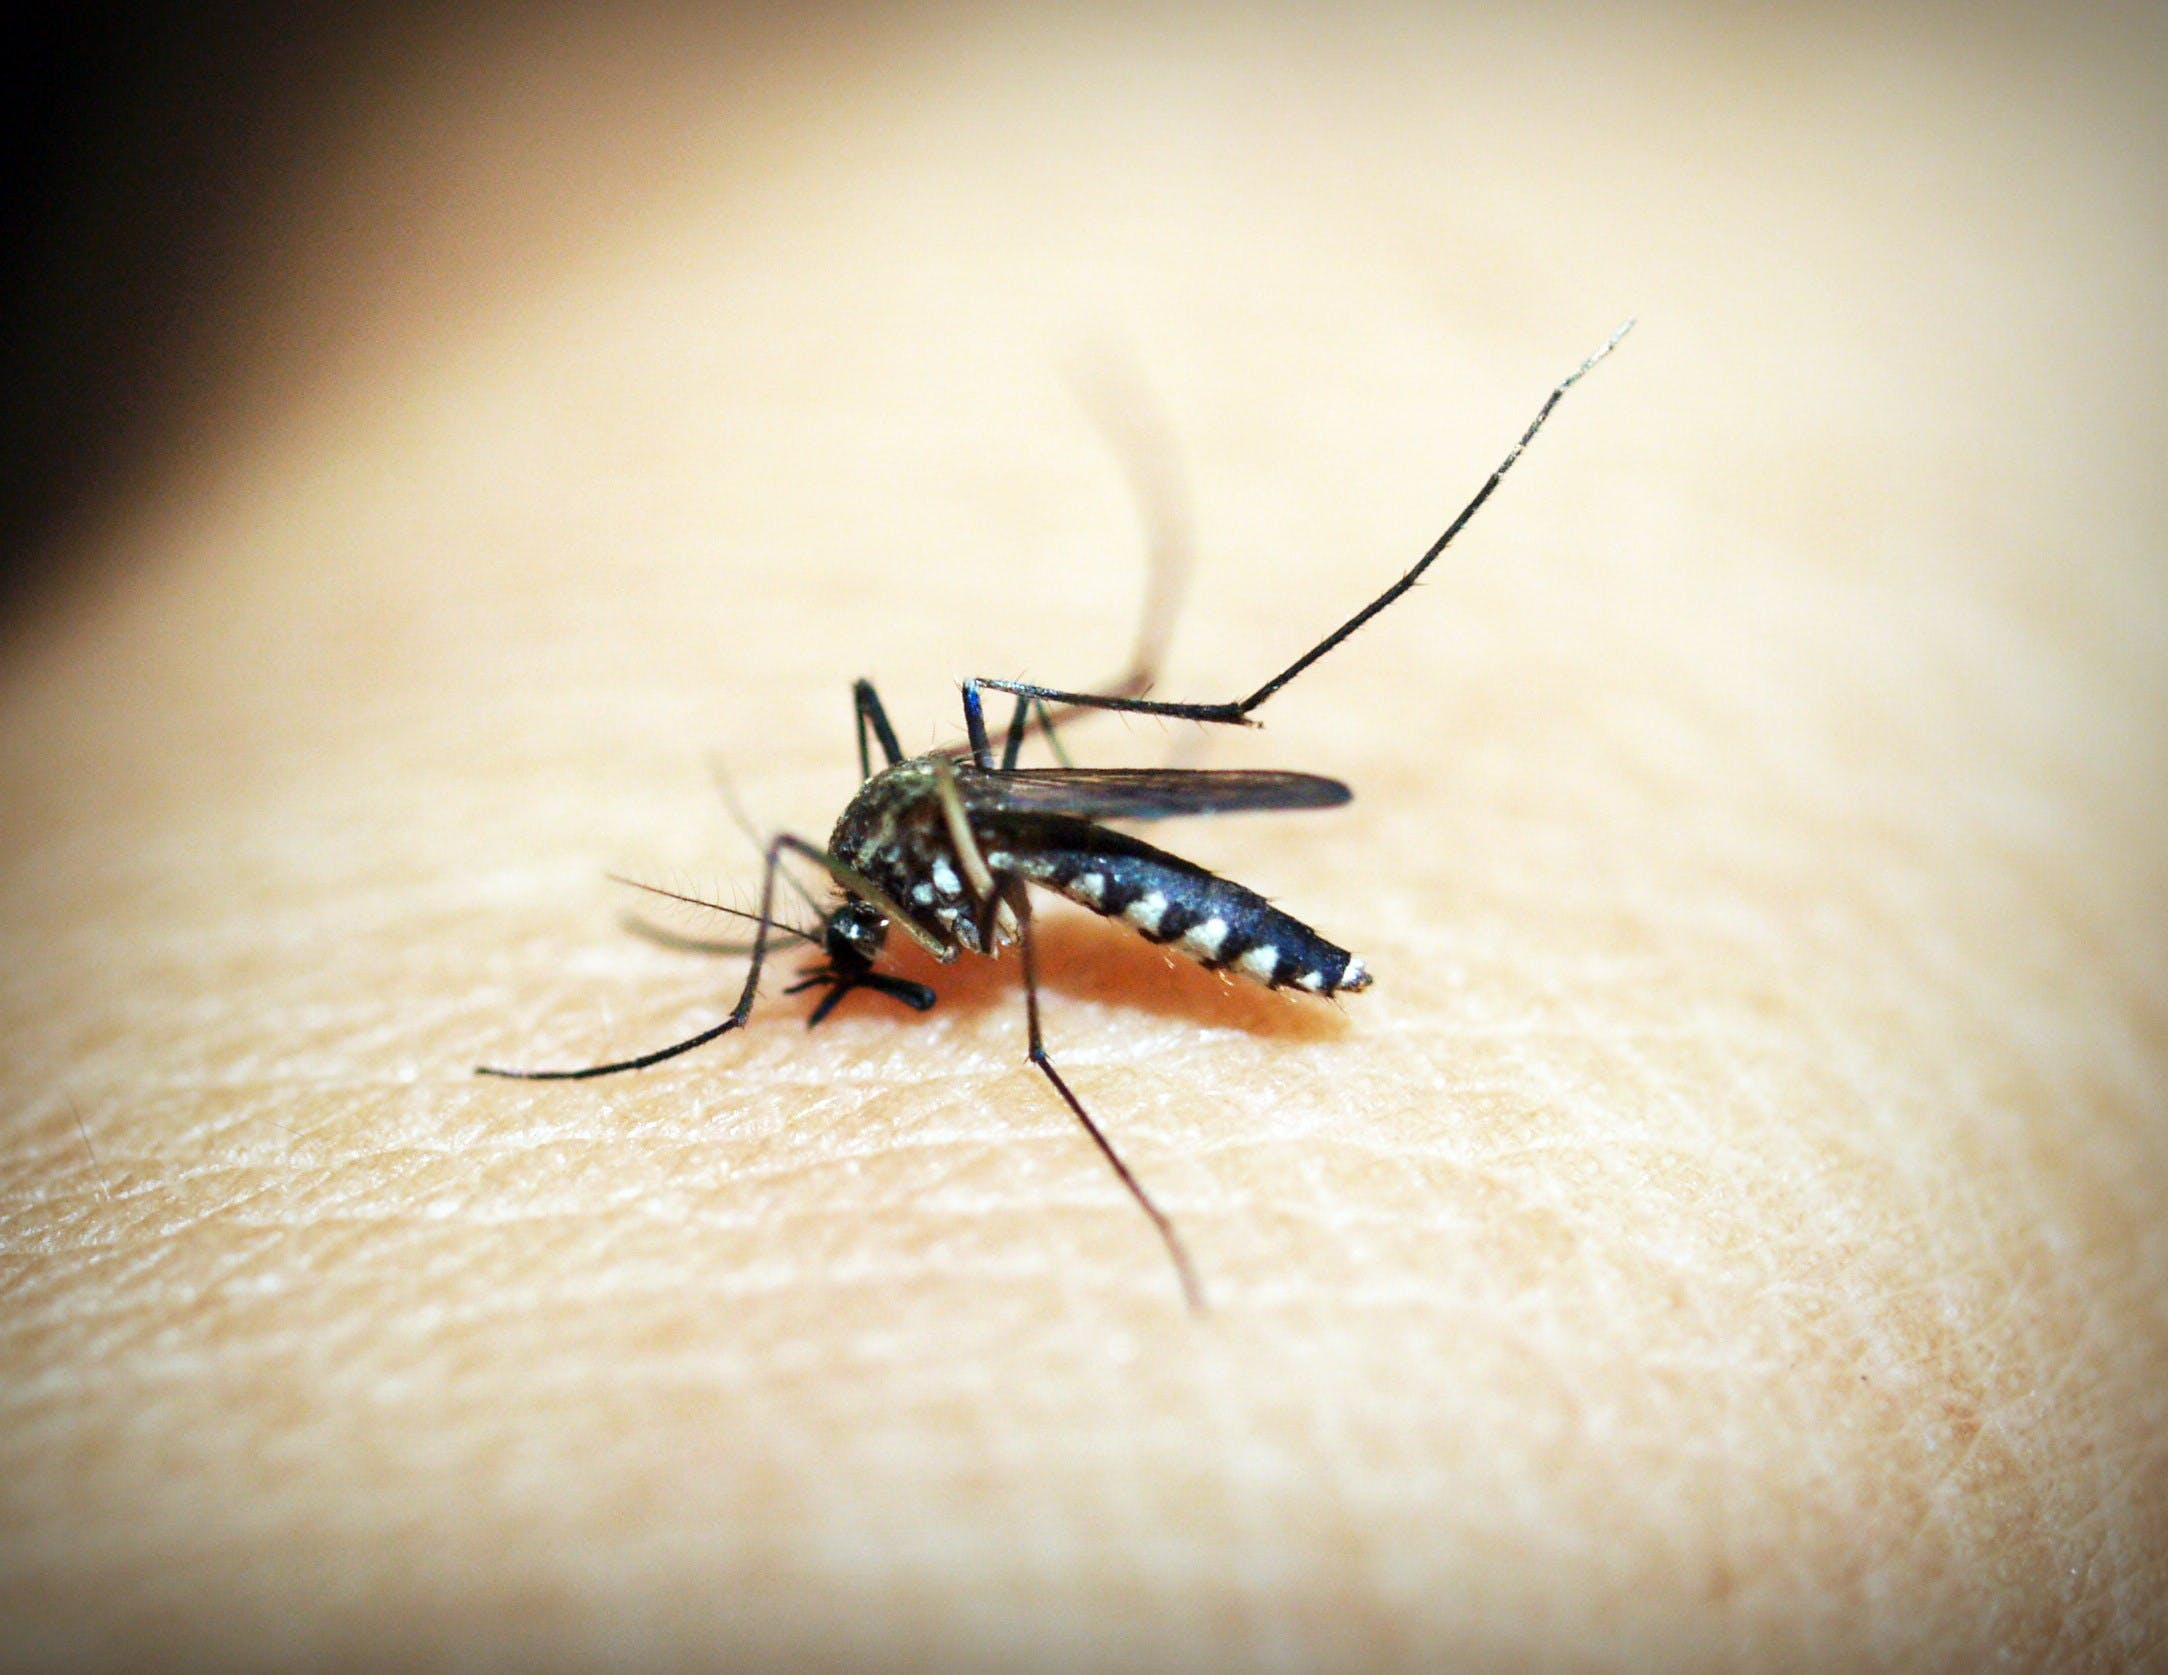 Black Mosquito on Person's Skin